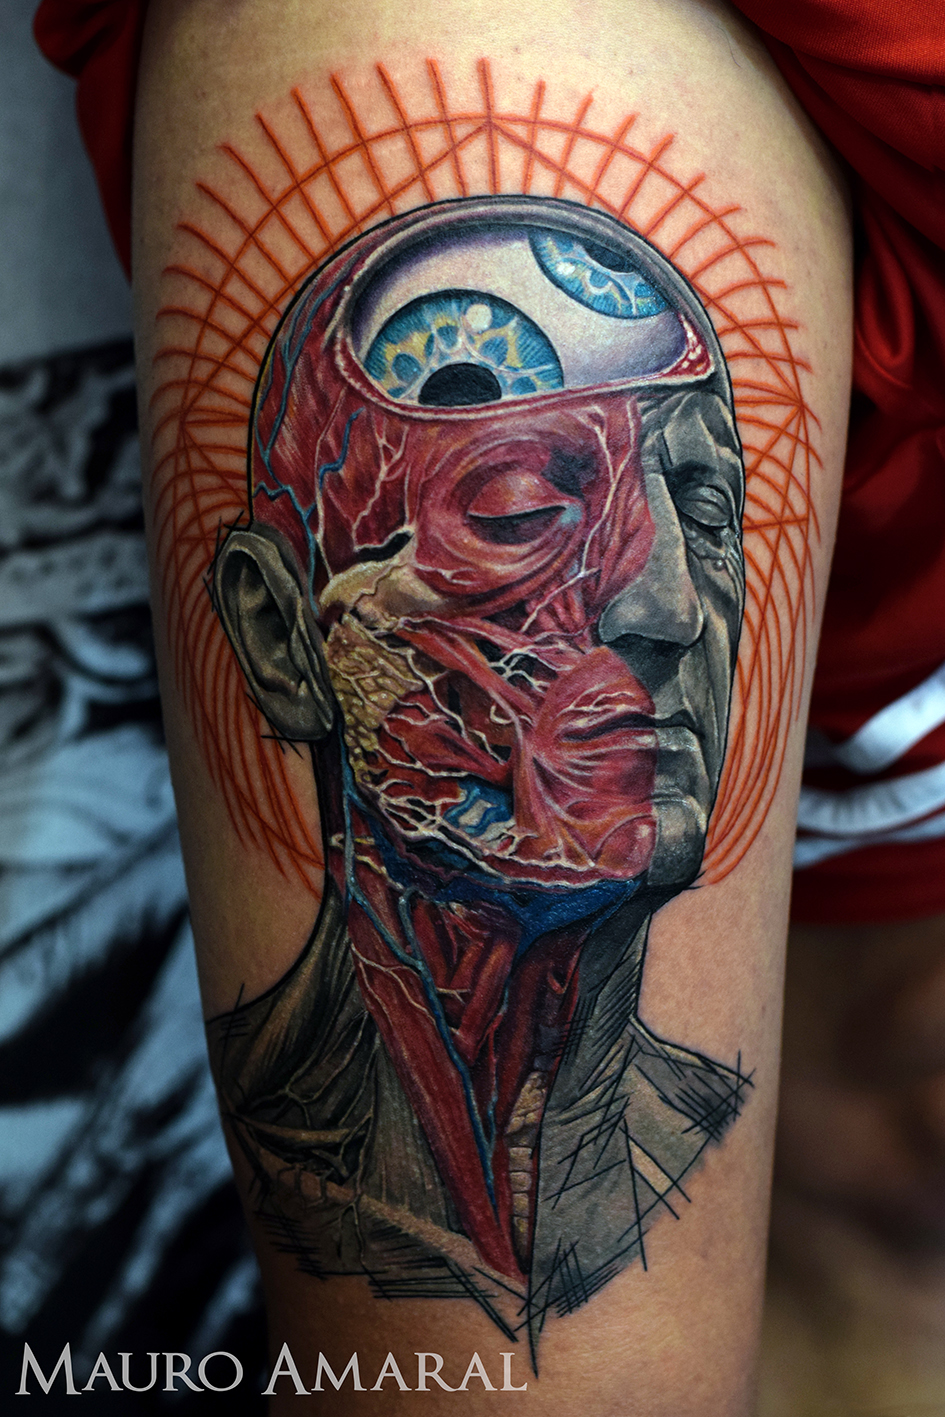 80 crazy and amazing tattoo designs for men and women desiznworld -  Design Idea For Men And Women Most Amazing Tattoo Club Tattoo Find The Best Tattoo Artists